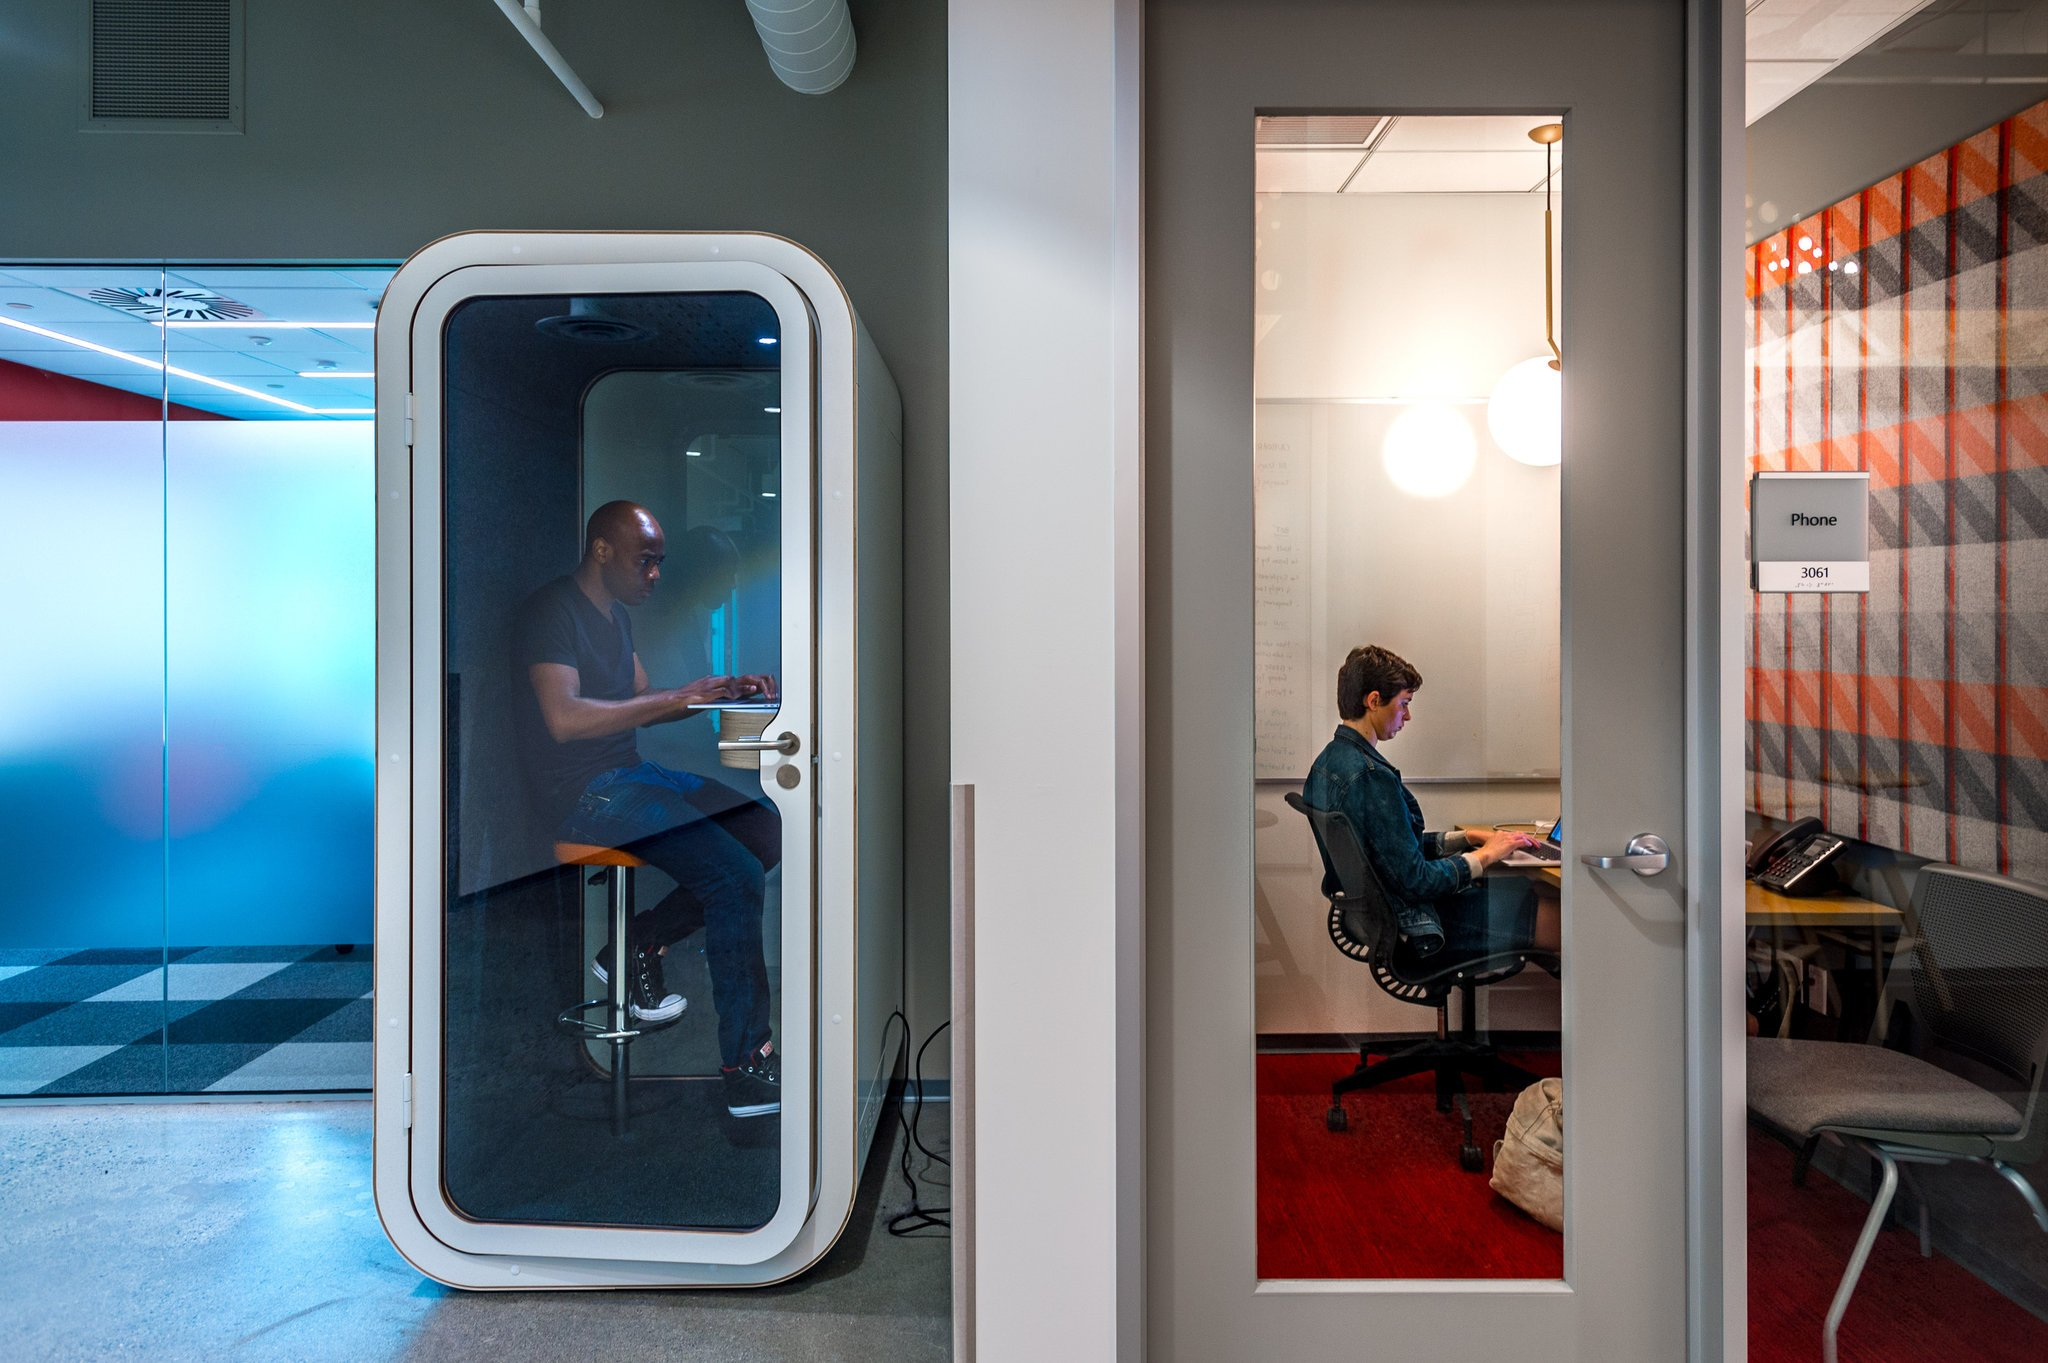 Renovated Microsoft offices have a variety of work spaces for employees. Left, a phone-booth-style room for privacy, and right, an isolation room. (Stuart Isett for The New York Times)